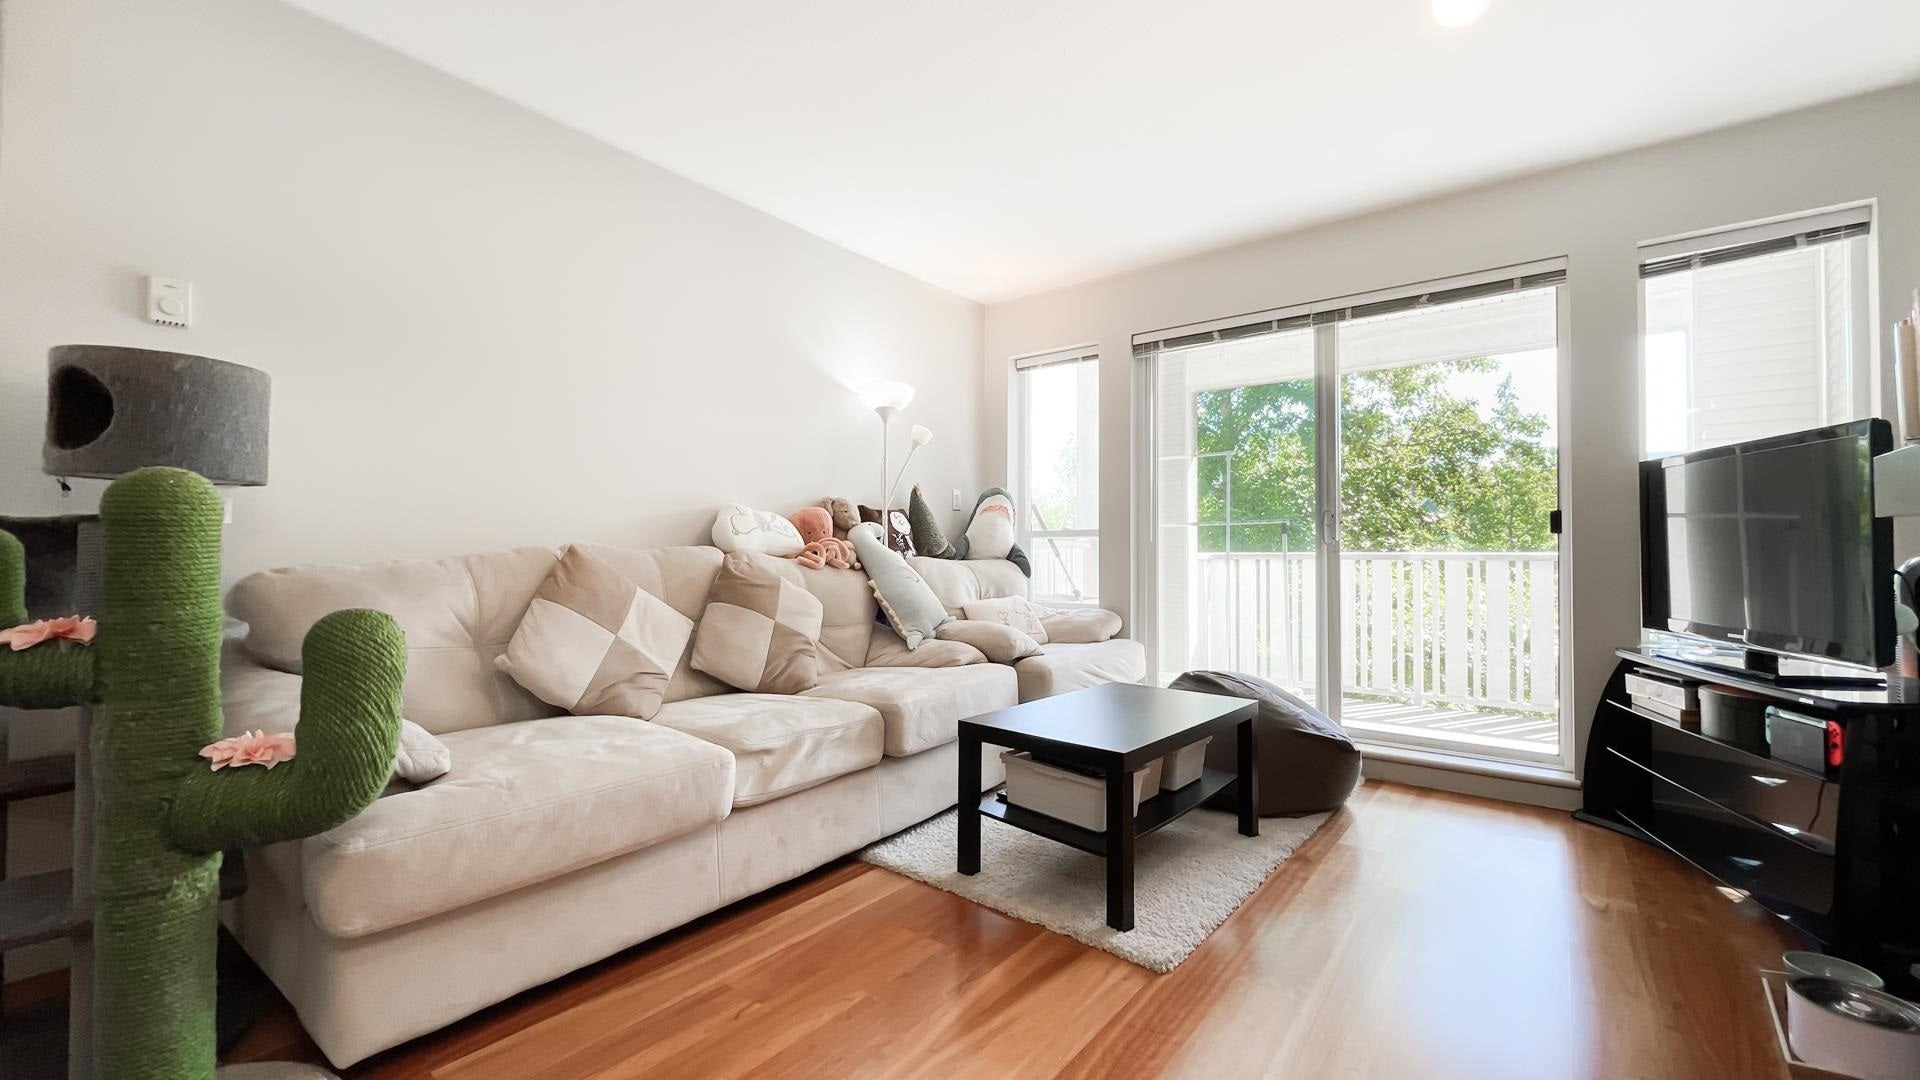 301 8060 JONES ROAD - Brighouse South Apartment/Condo for sale, 2 Bedrooms (R2602155)